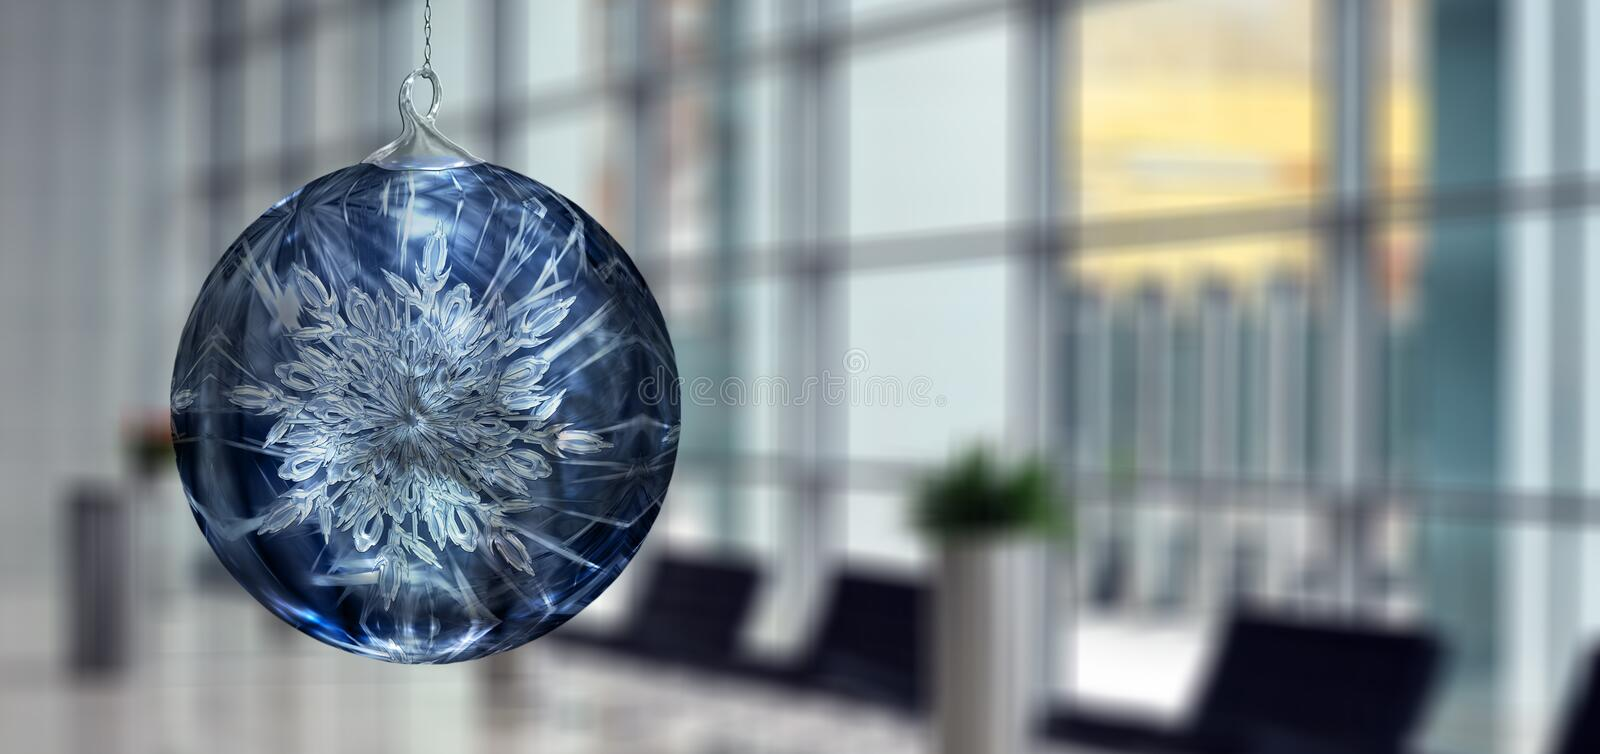 Water, Reflection, Glass, Sphere stock photos